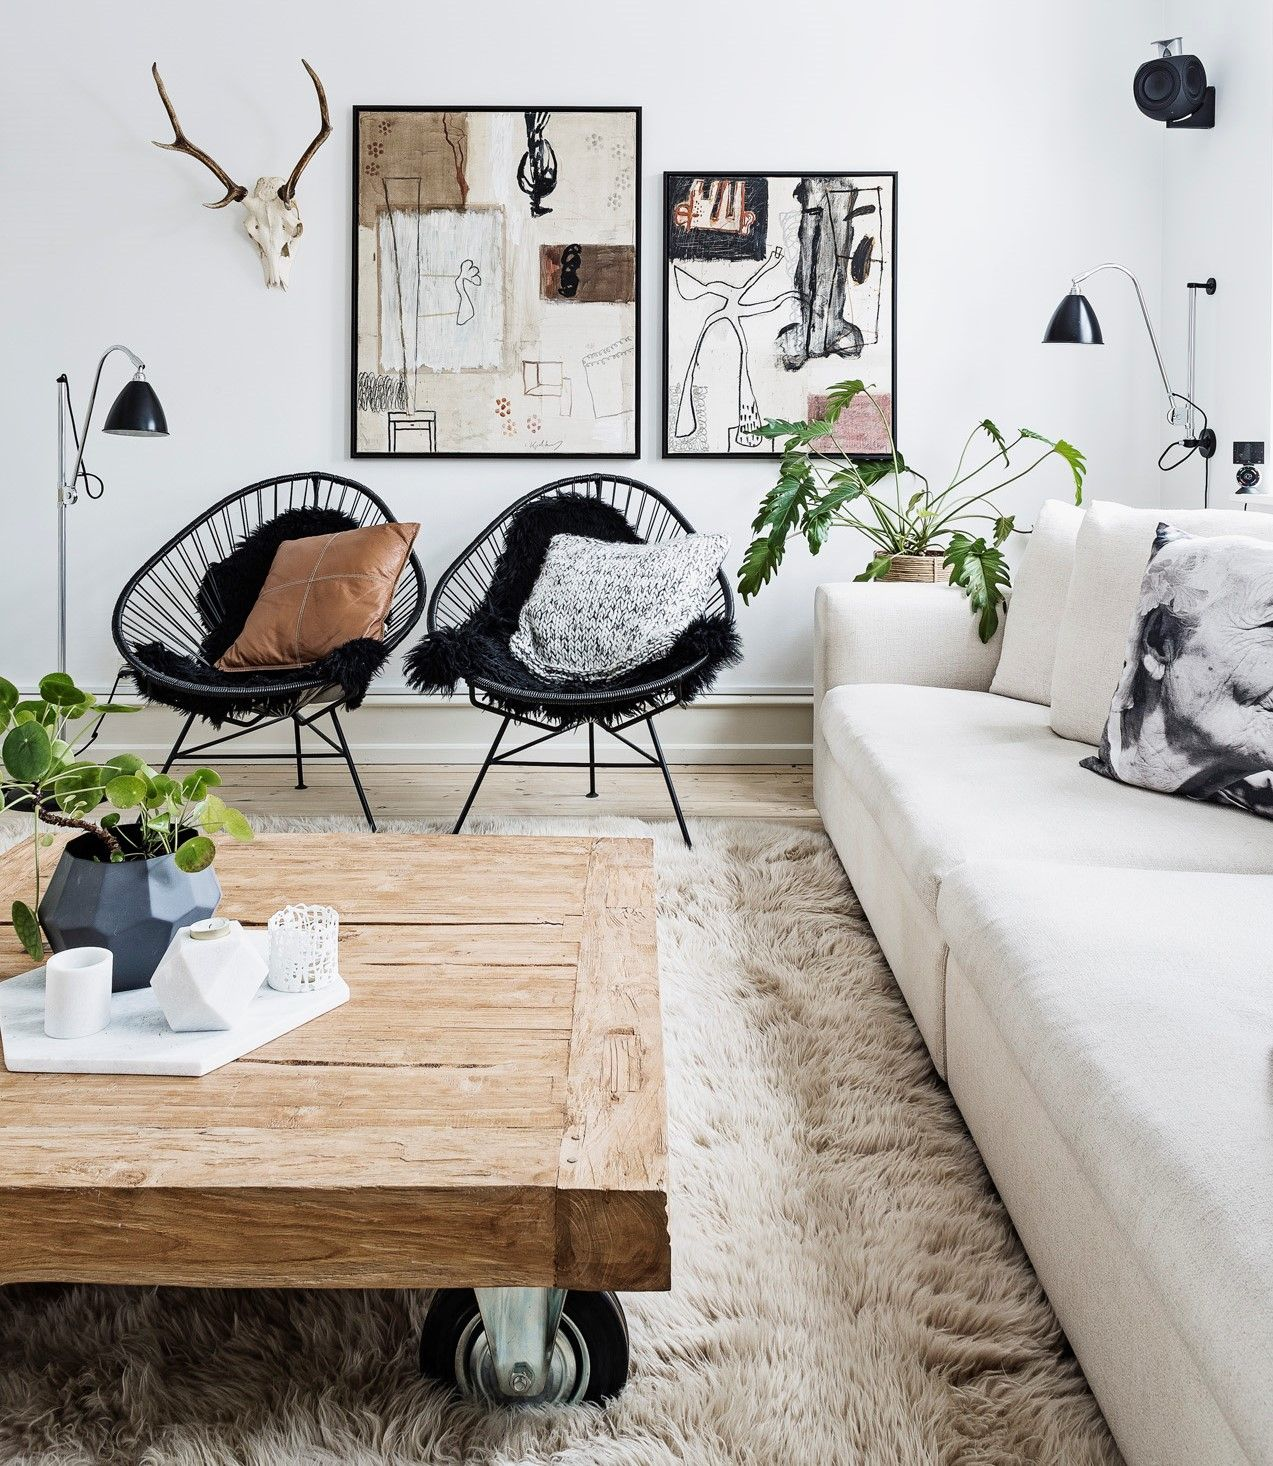 interior design styles: 8 popular types explained | scandinavian, Hause deko